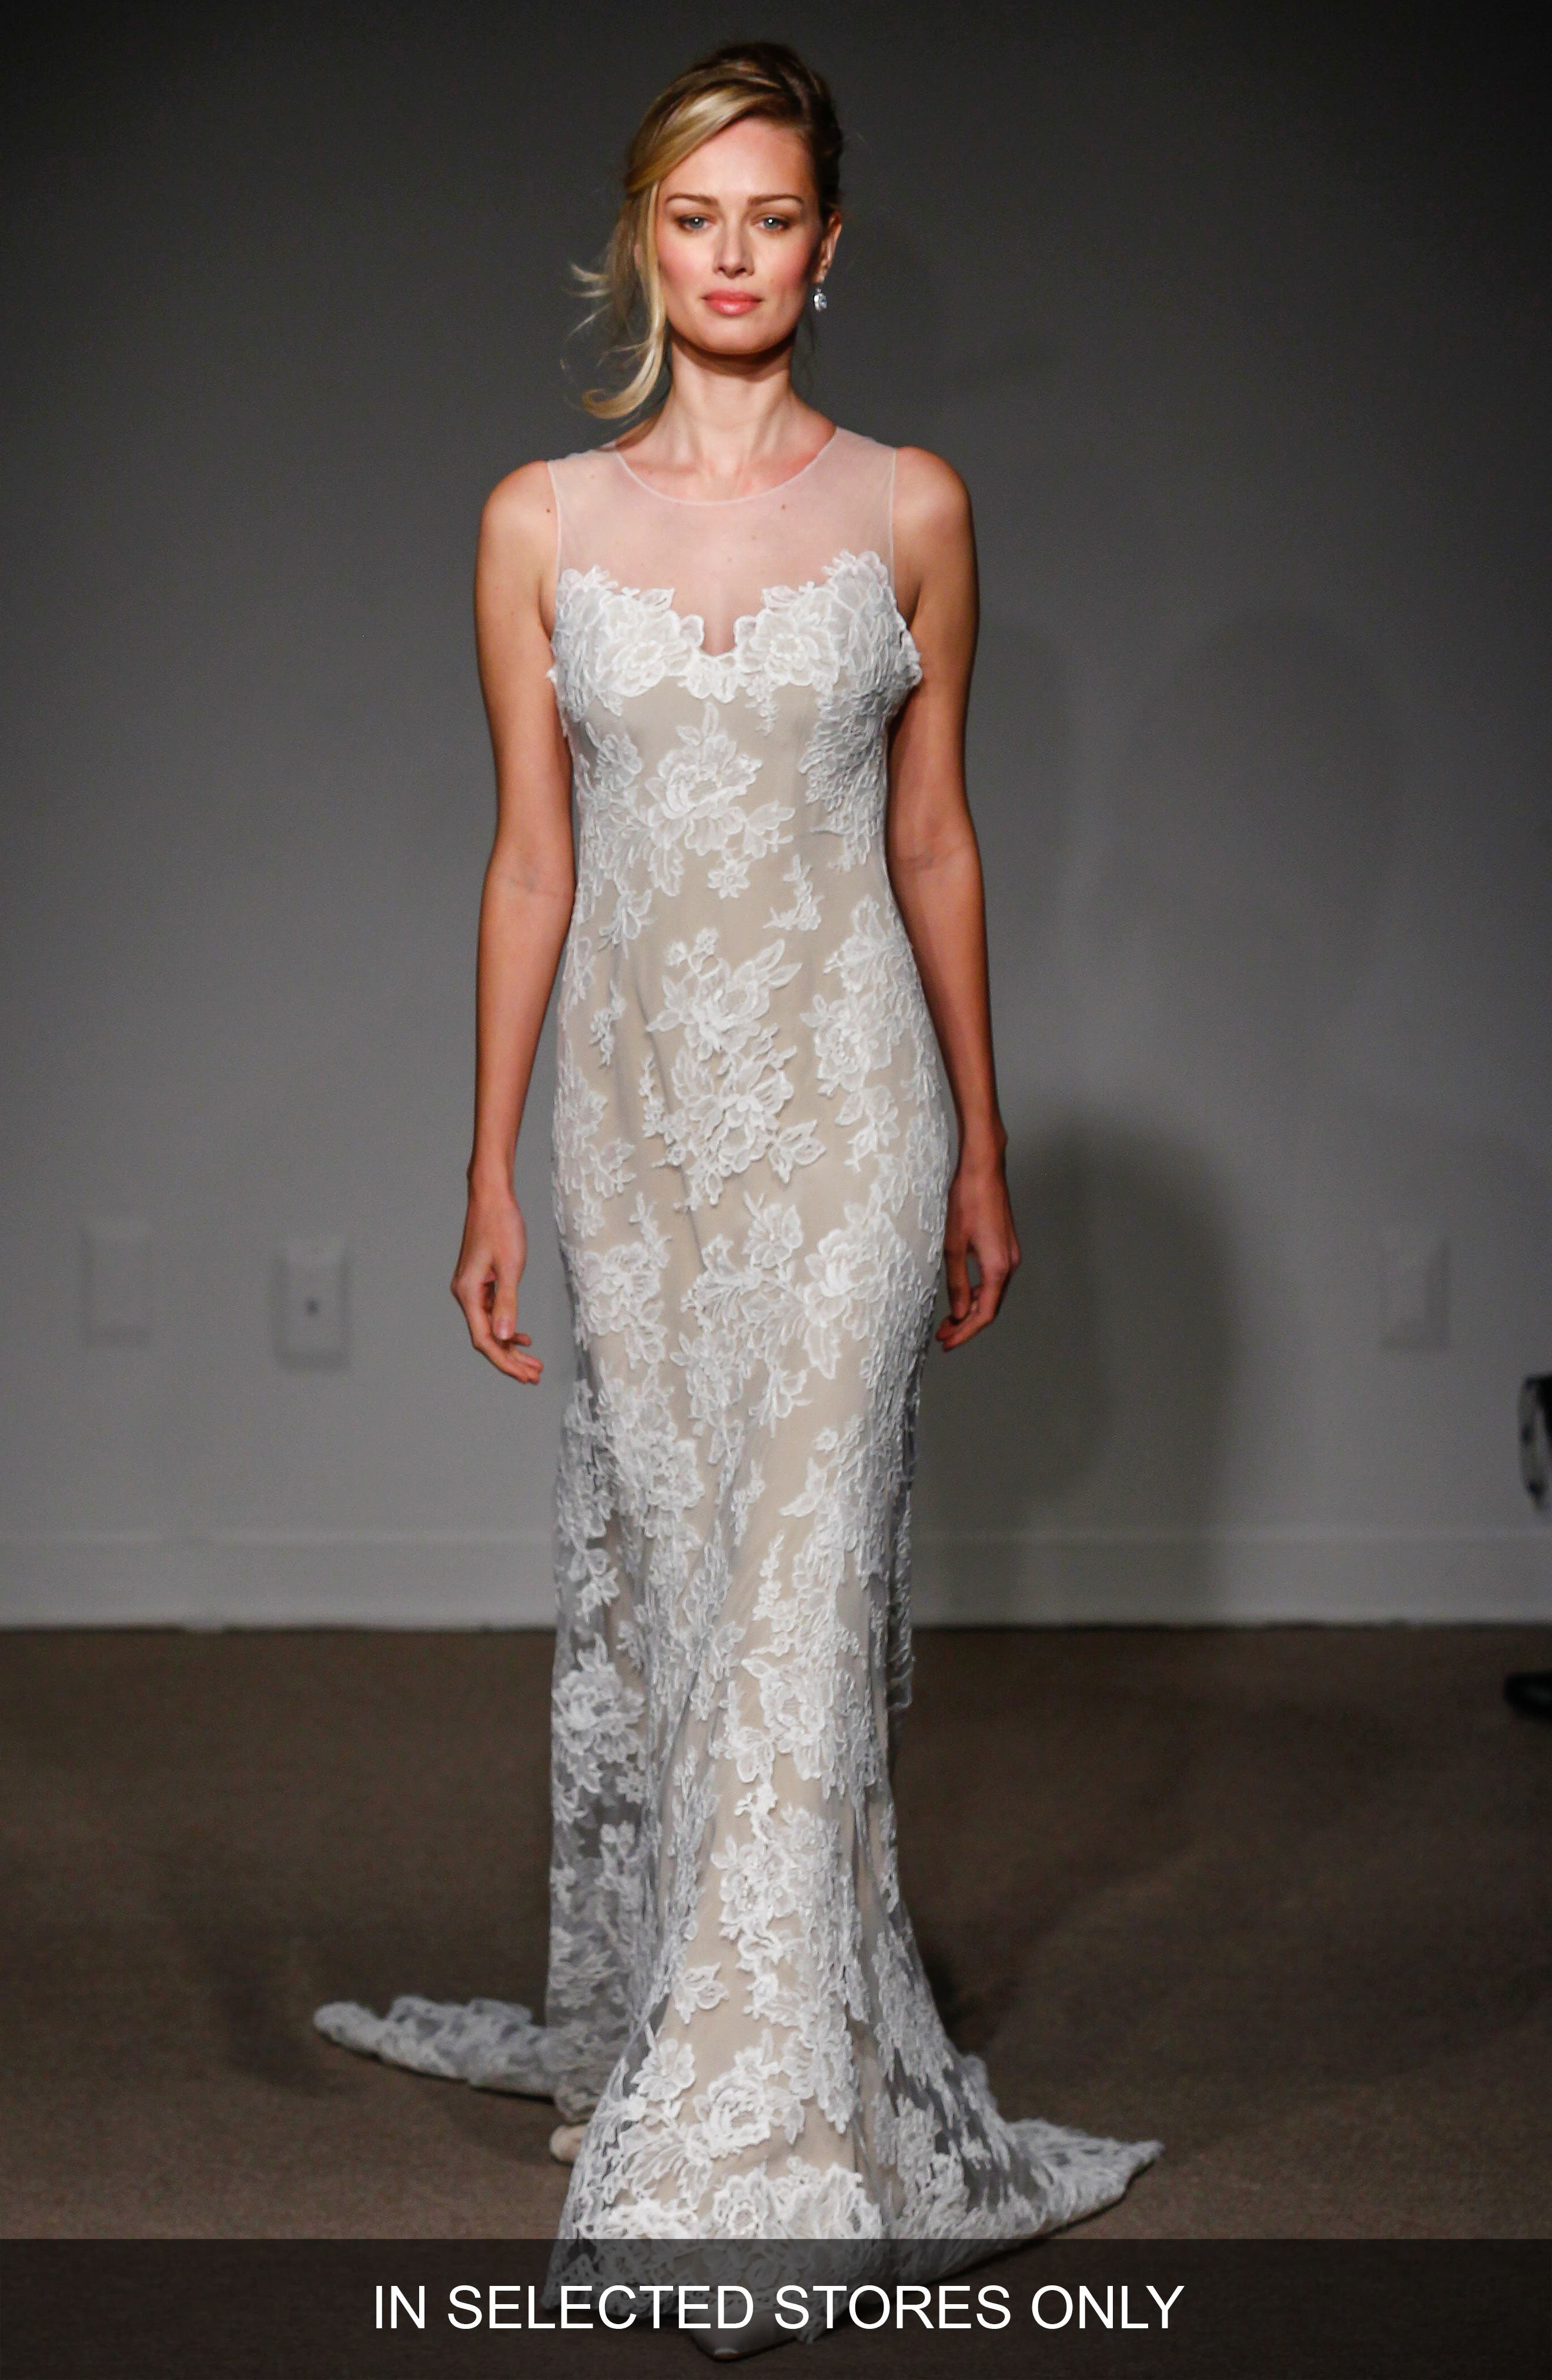 Anna Maier Couture Lola Illusion Neck Sleeveless Lace Column Gown (In Selected Stores Only)